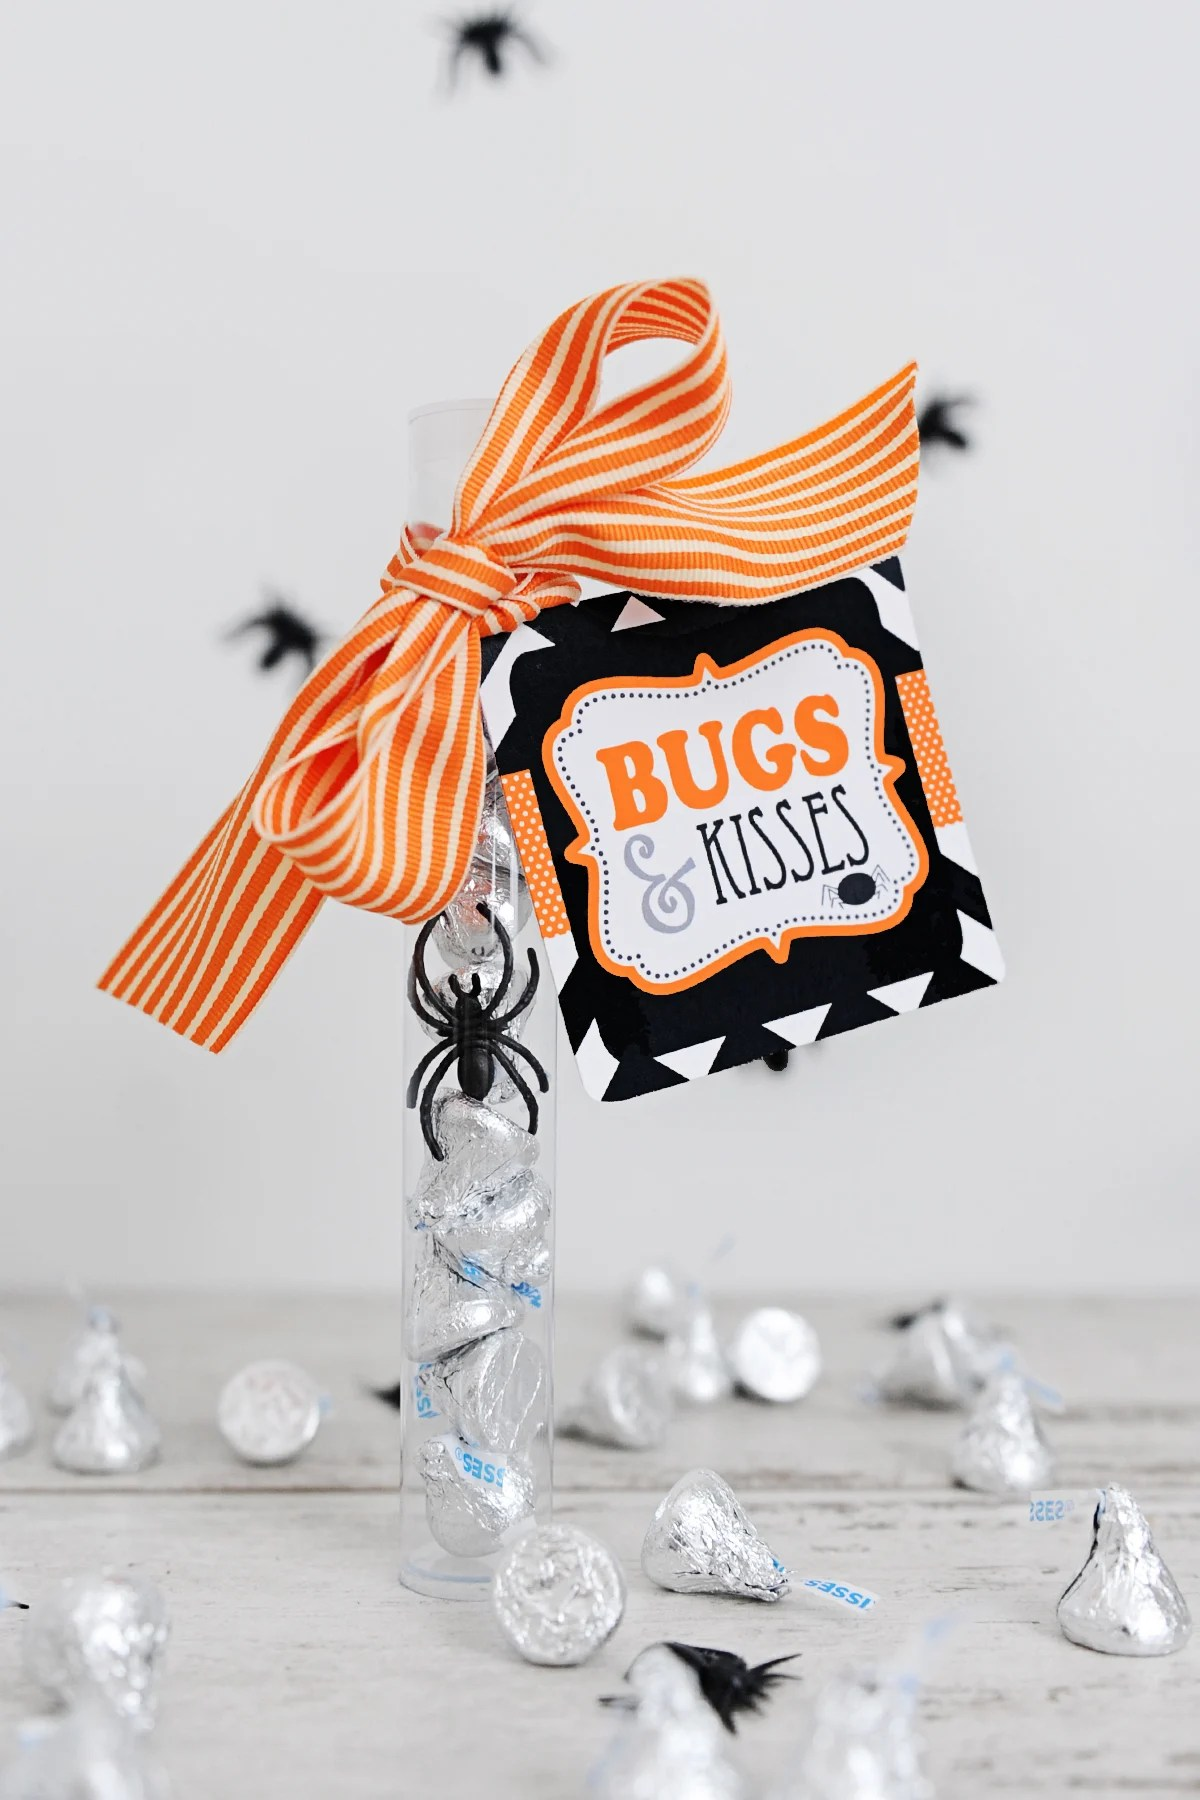 picture about Bugs and Kisses Free Printable known as Lovely Insects and Kisses Printable for Halloween - Red